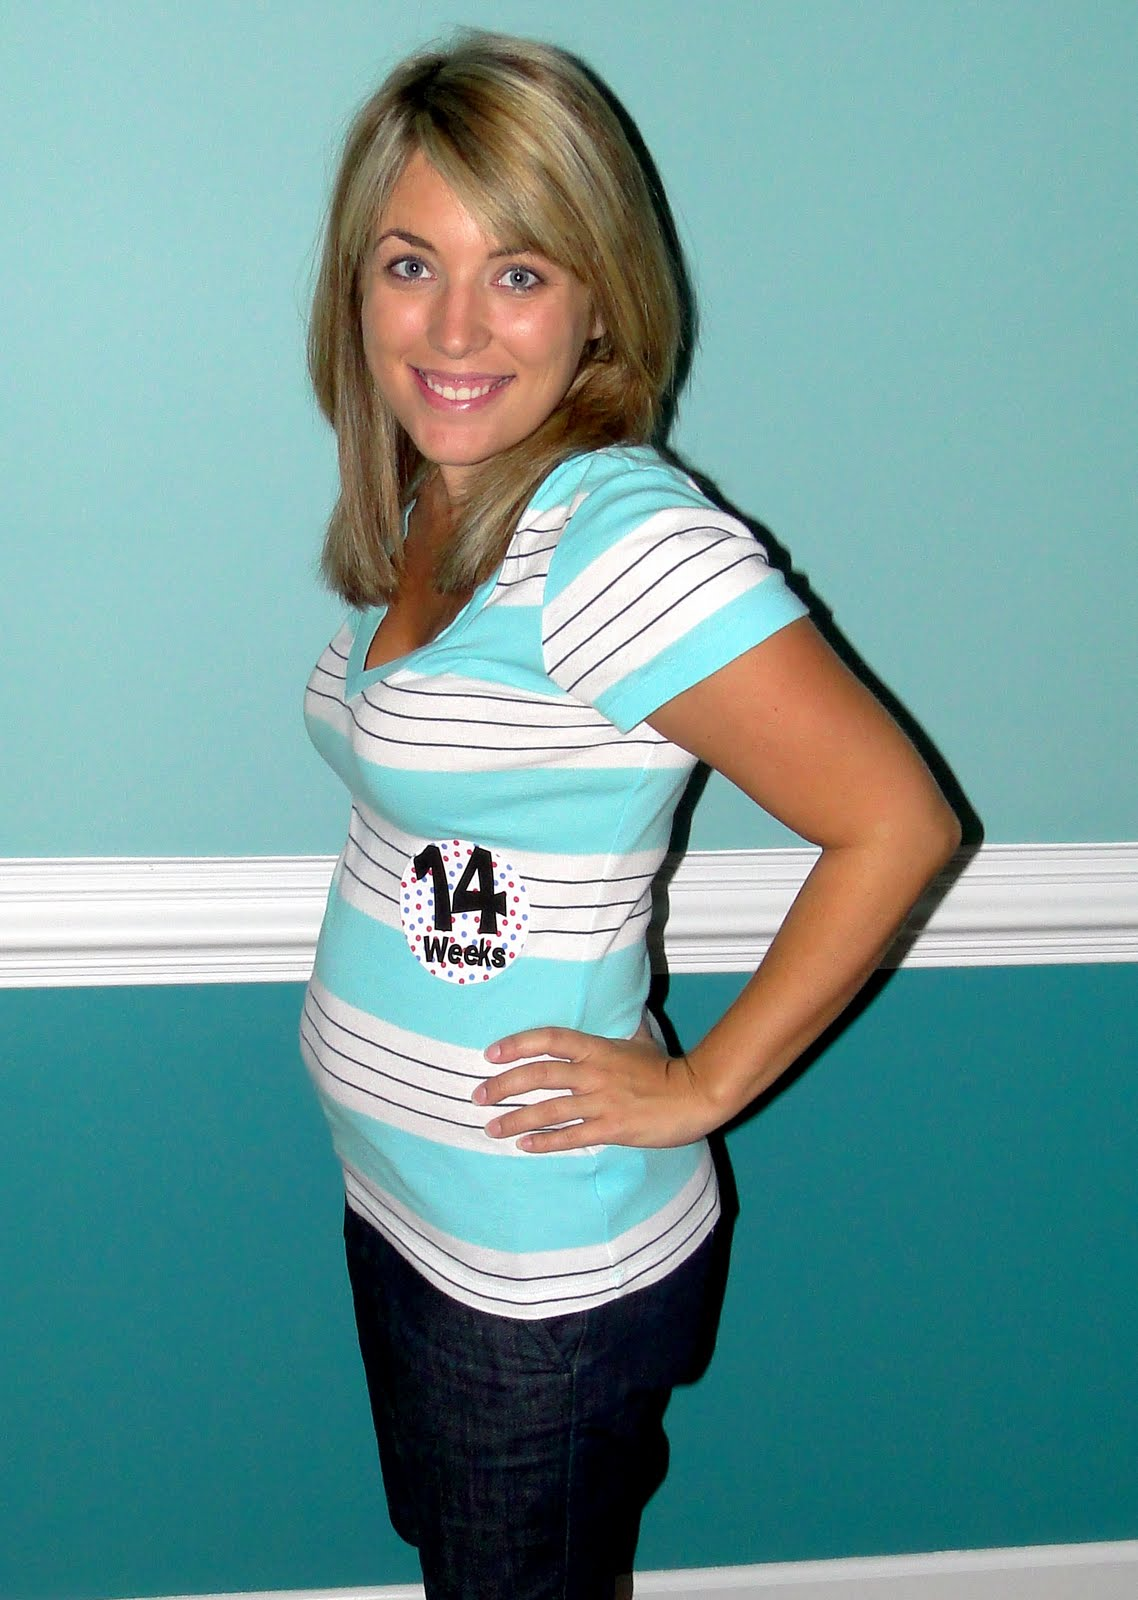 14 weeks pregnant! - the journey of parenthood